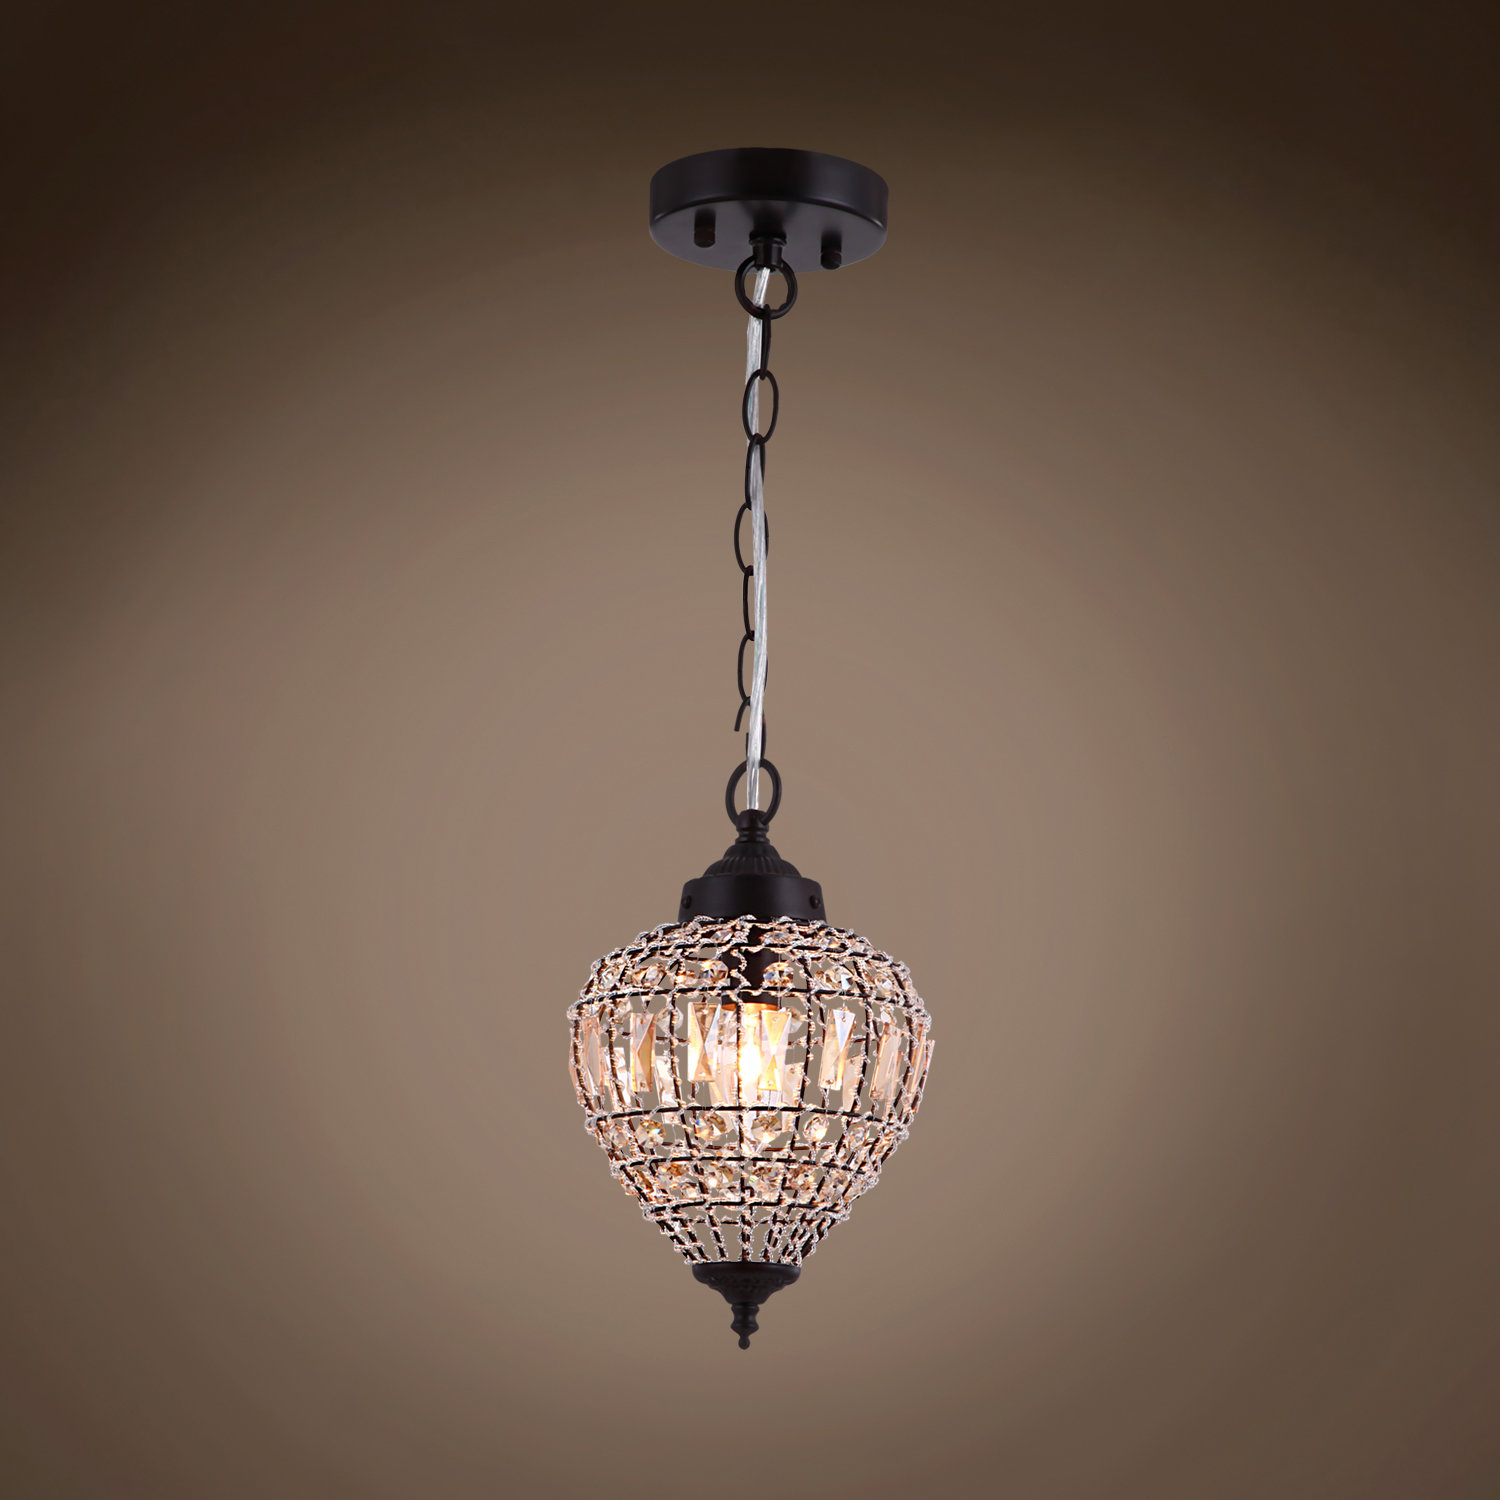 Alexa 1-Light Unique / Statement Teardrop Pendant with Spokane 1-Light Single Urn Pendants (Image 1 of 30)